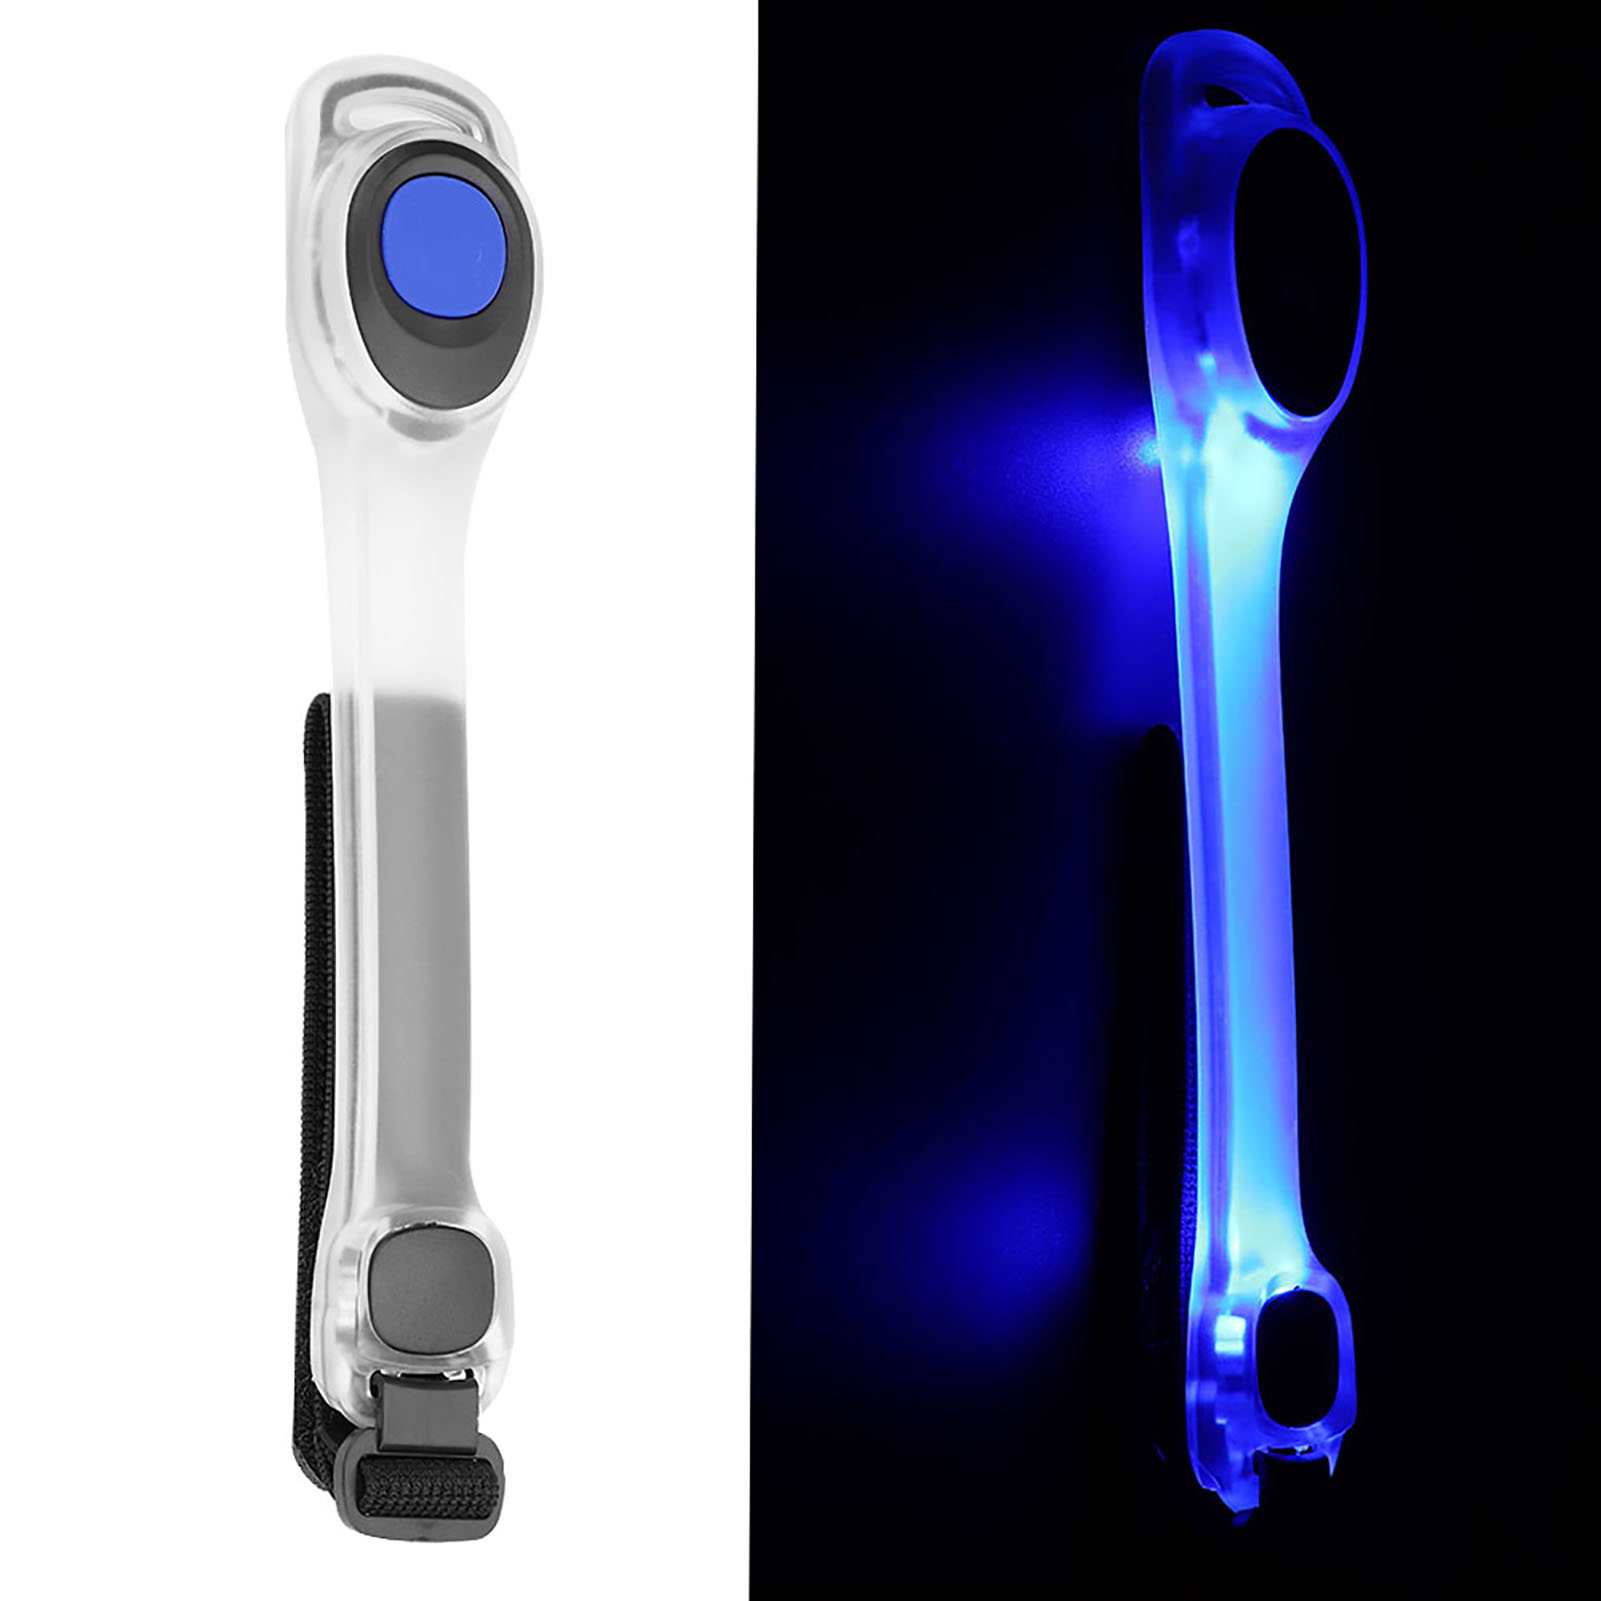 Reflective-LED-Light-Arm-Armband-Strap-Safety-Belt-For-Night-Running-Cycling-GL